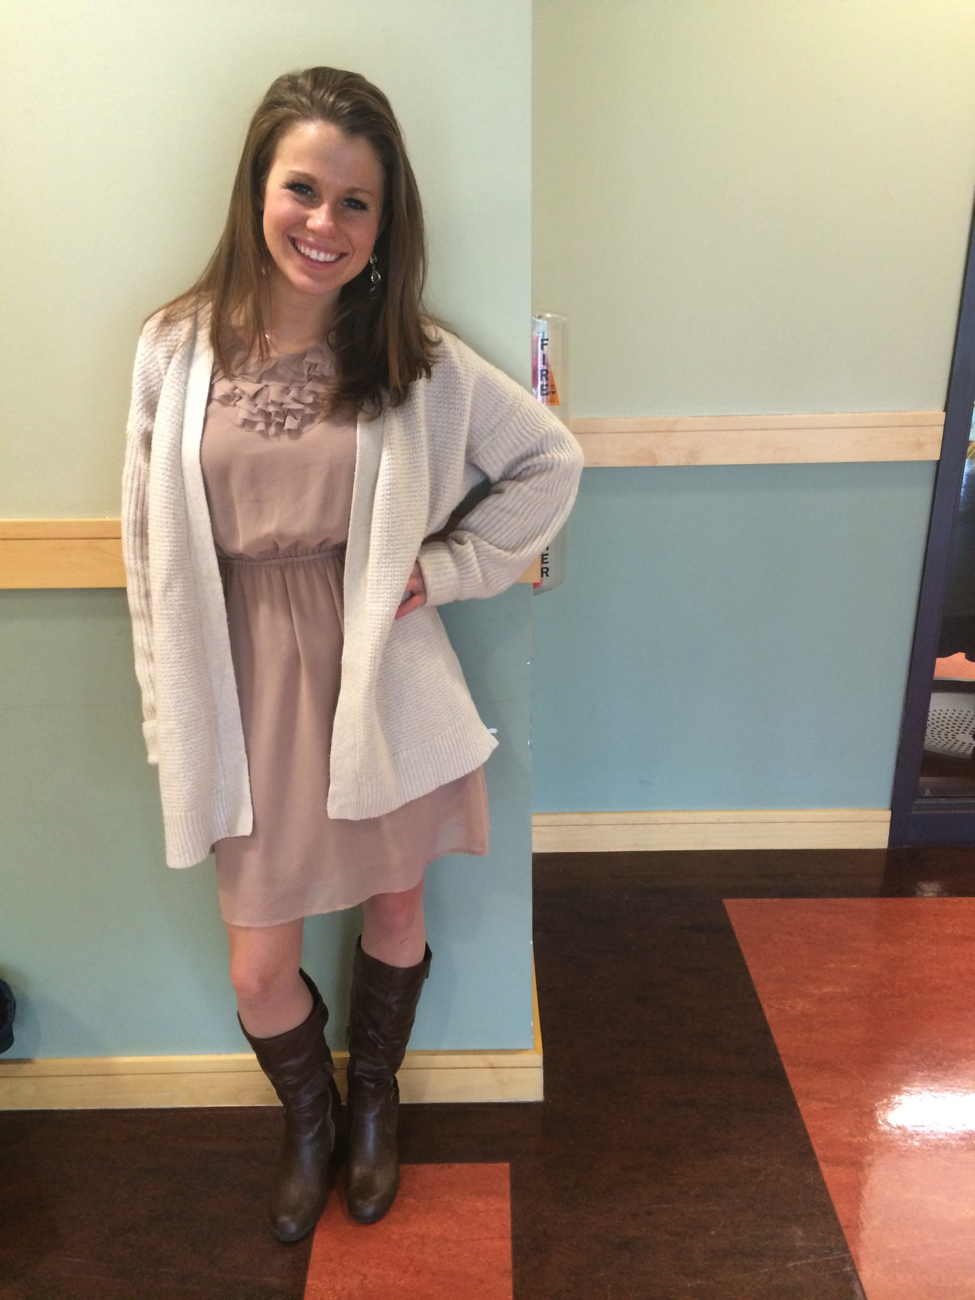 Senior Heather Quirk uses simple neutral colors, a cardigan, and boots to fashionably keep warm in a dress during winter.